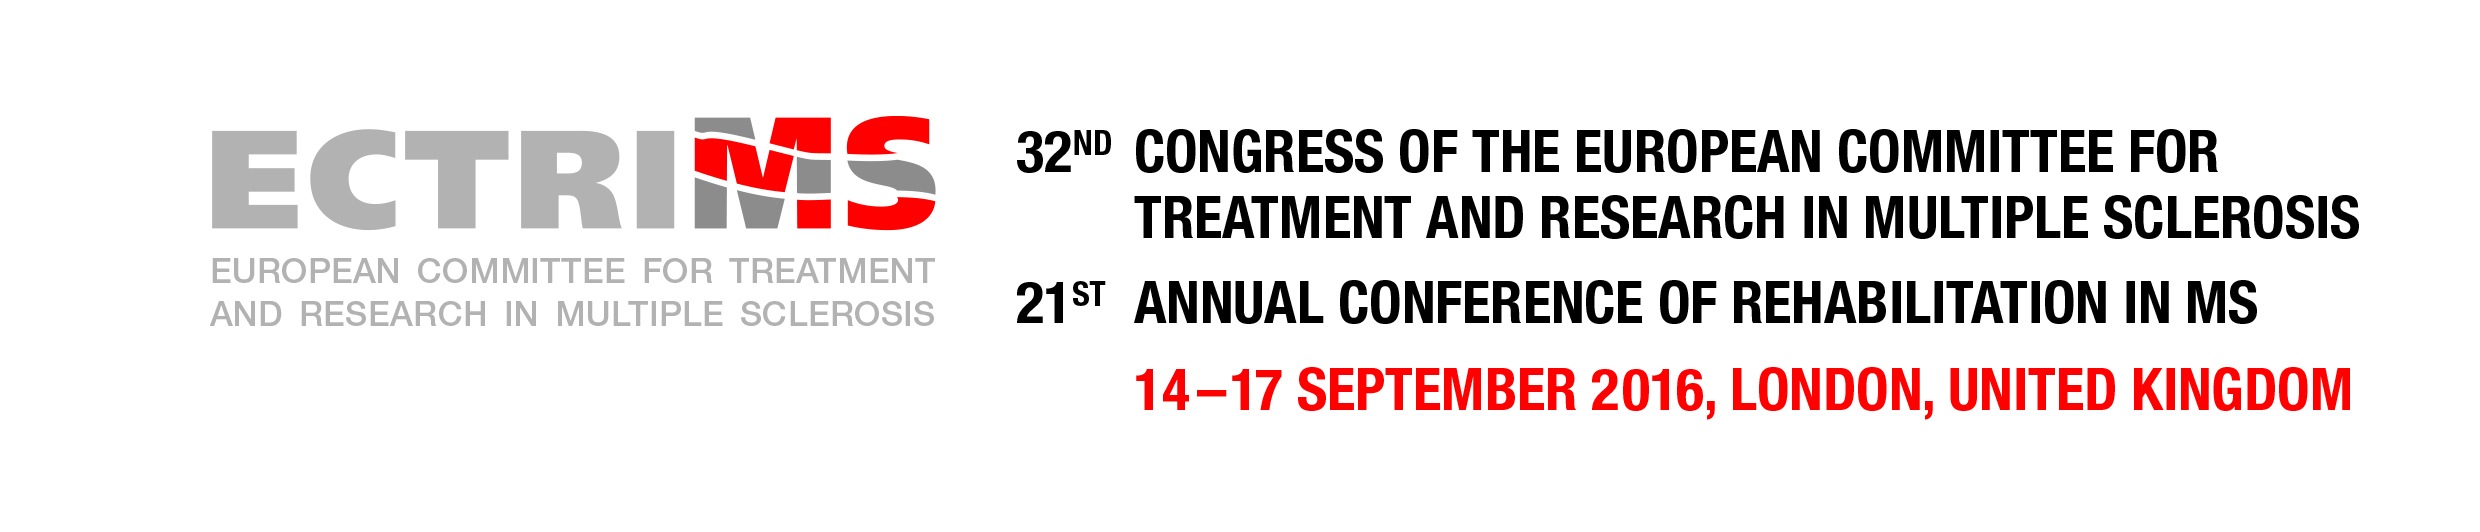 32nd Congress of ECTRIMS